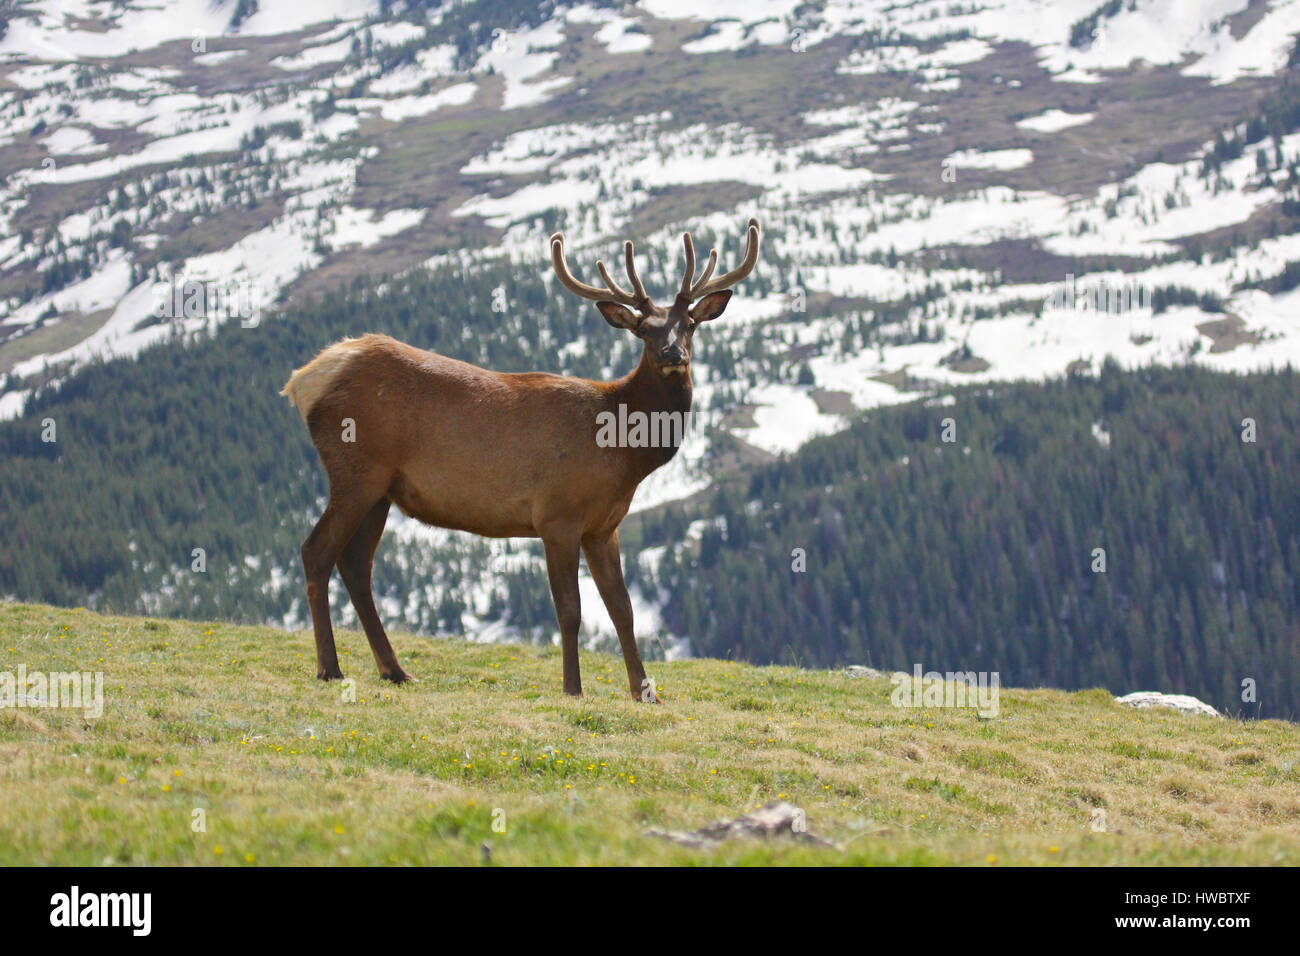 07f4b2ecb7f Bull elk walking above tree line in alpine meadow with snow capped peaks in  background Rocky Mountain National Park